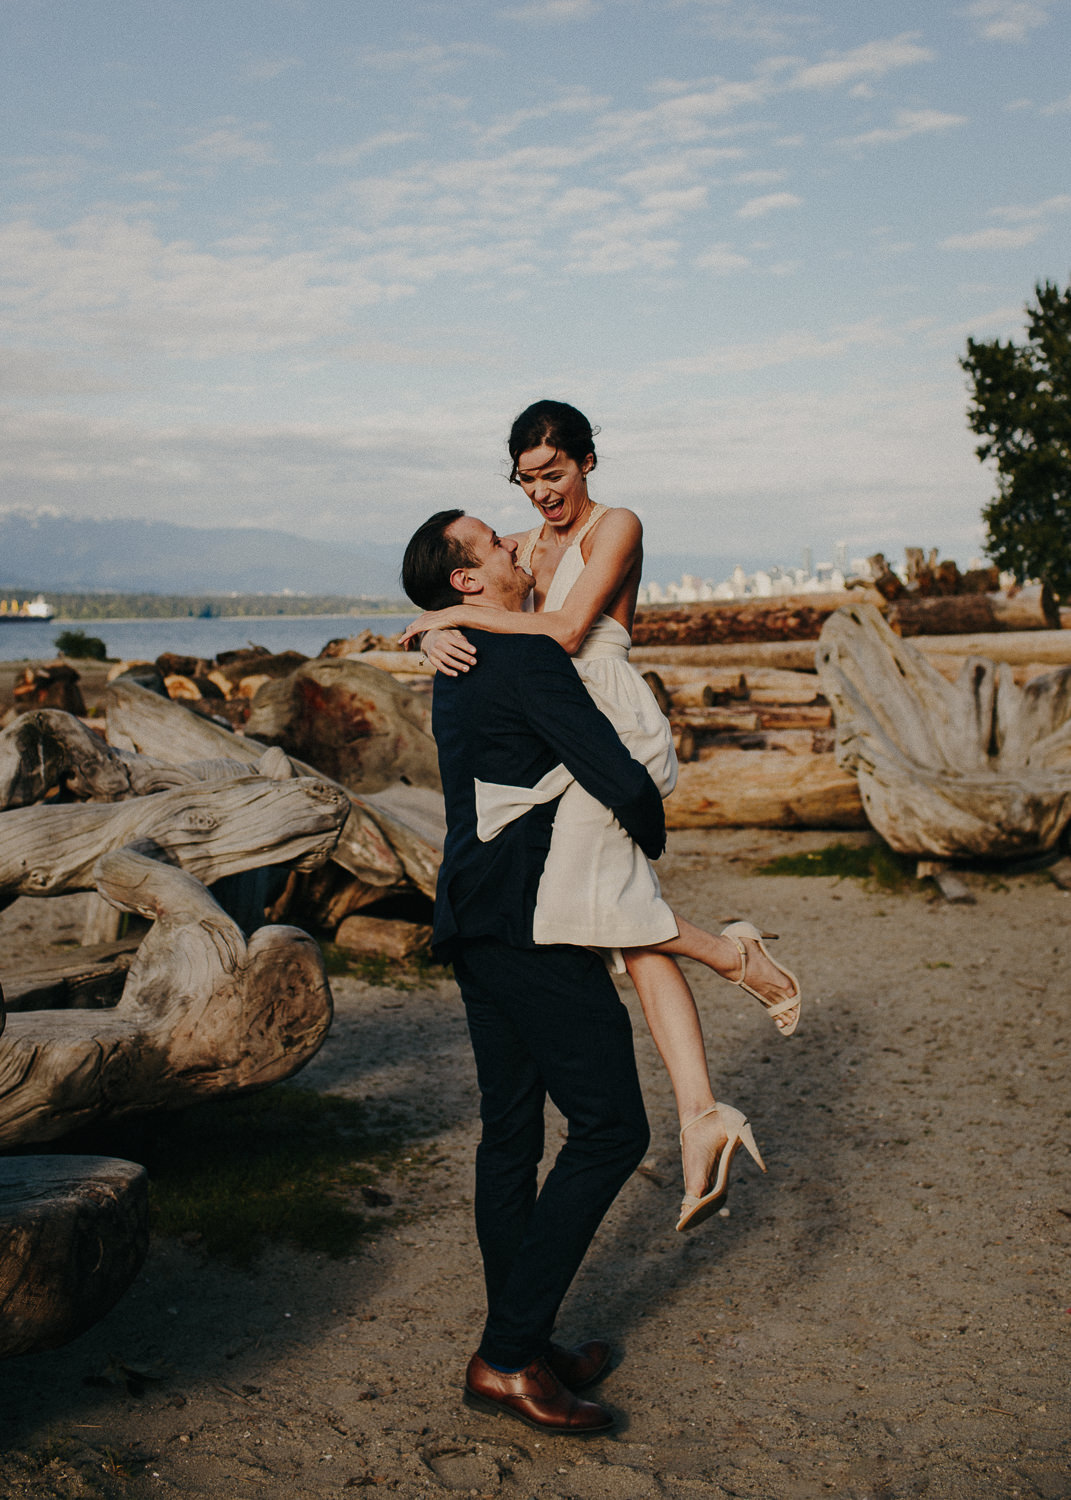 bride laughing as groom lifts her up